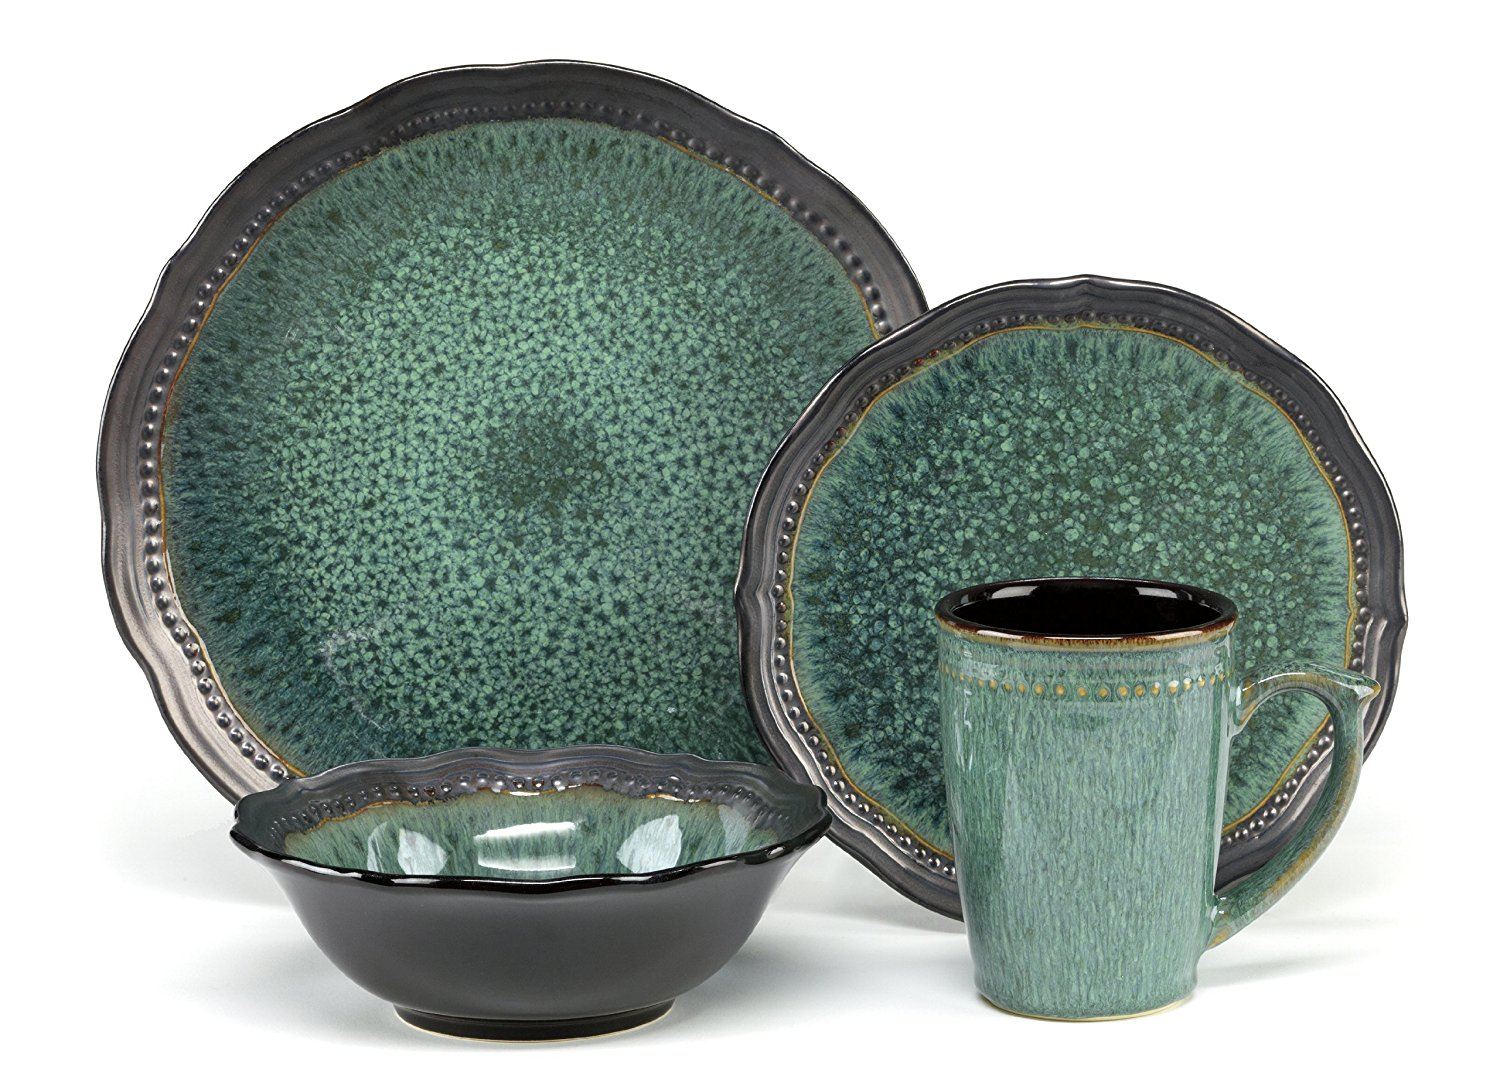 Square Dish Sets | Dish Sets for 8 | Stoneware Dinnerware Sets